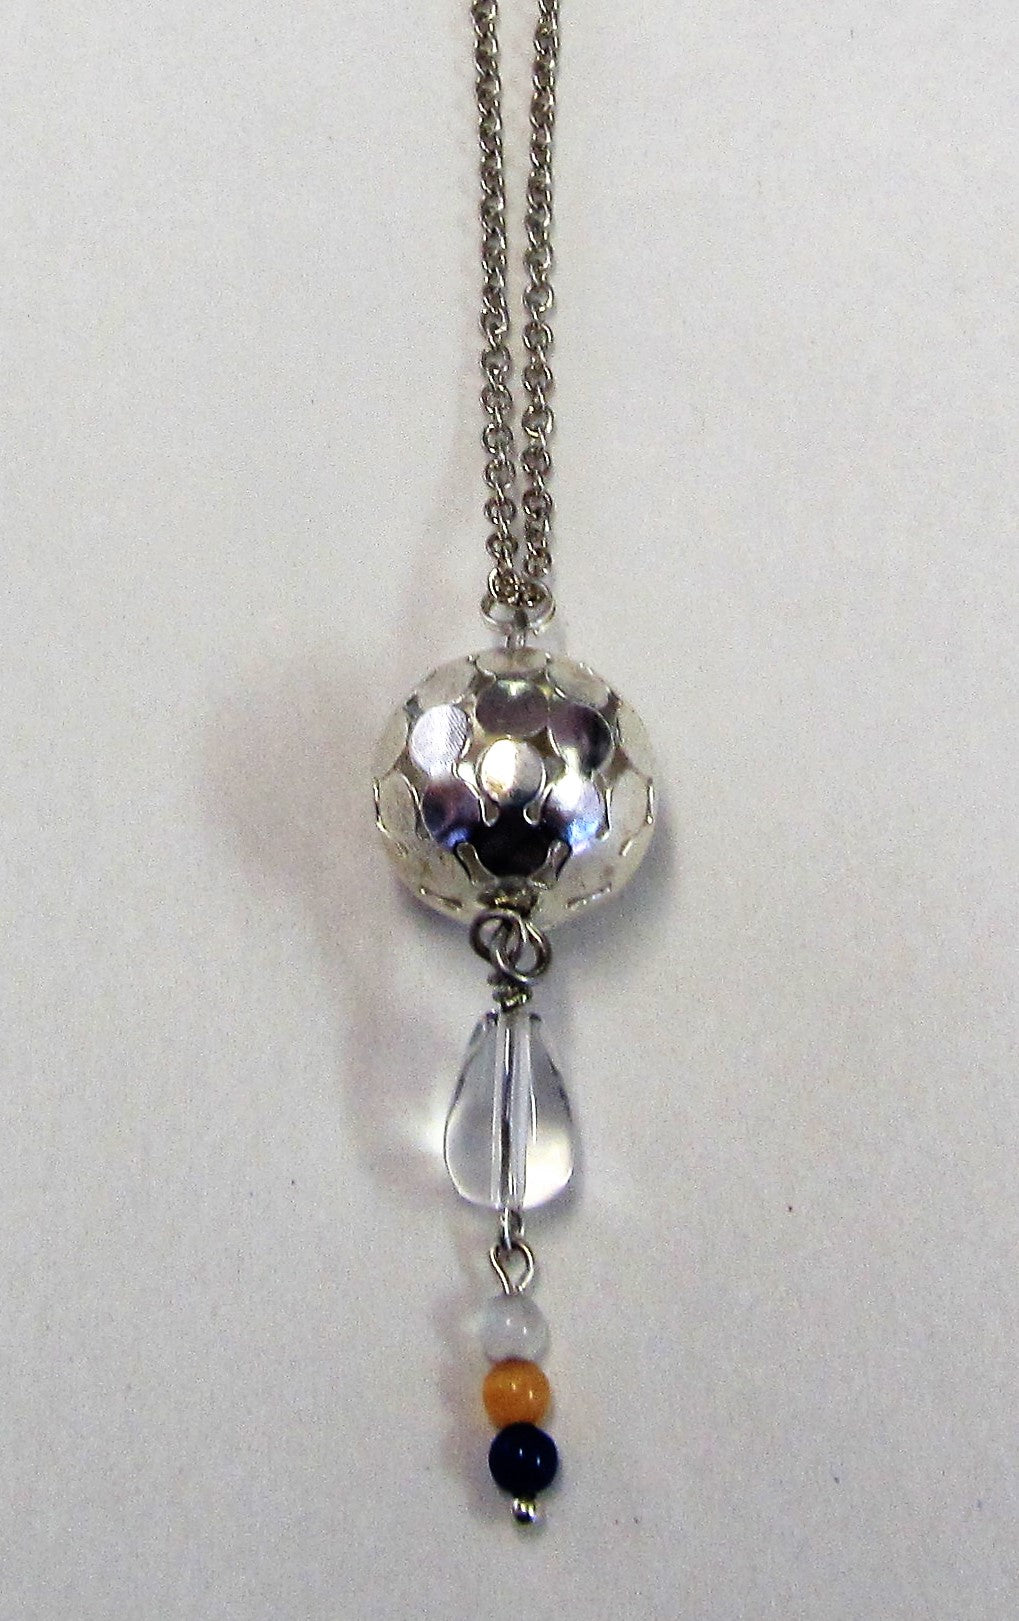 Handcrafted silver plated ball pendant with beads on silver plated chain necklace